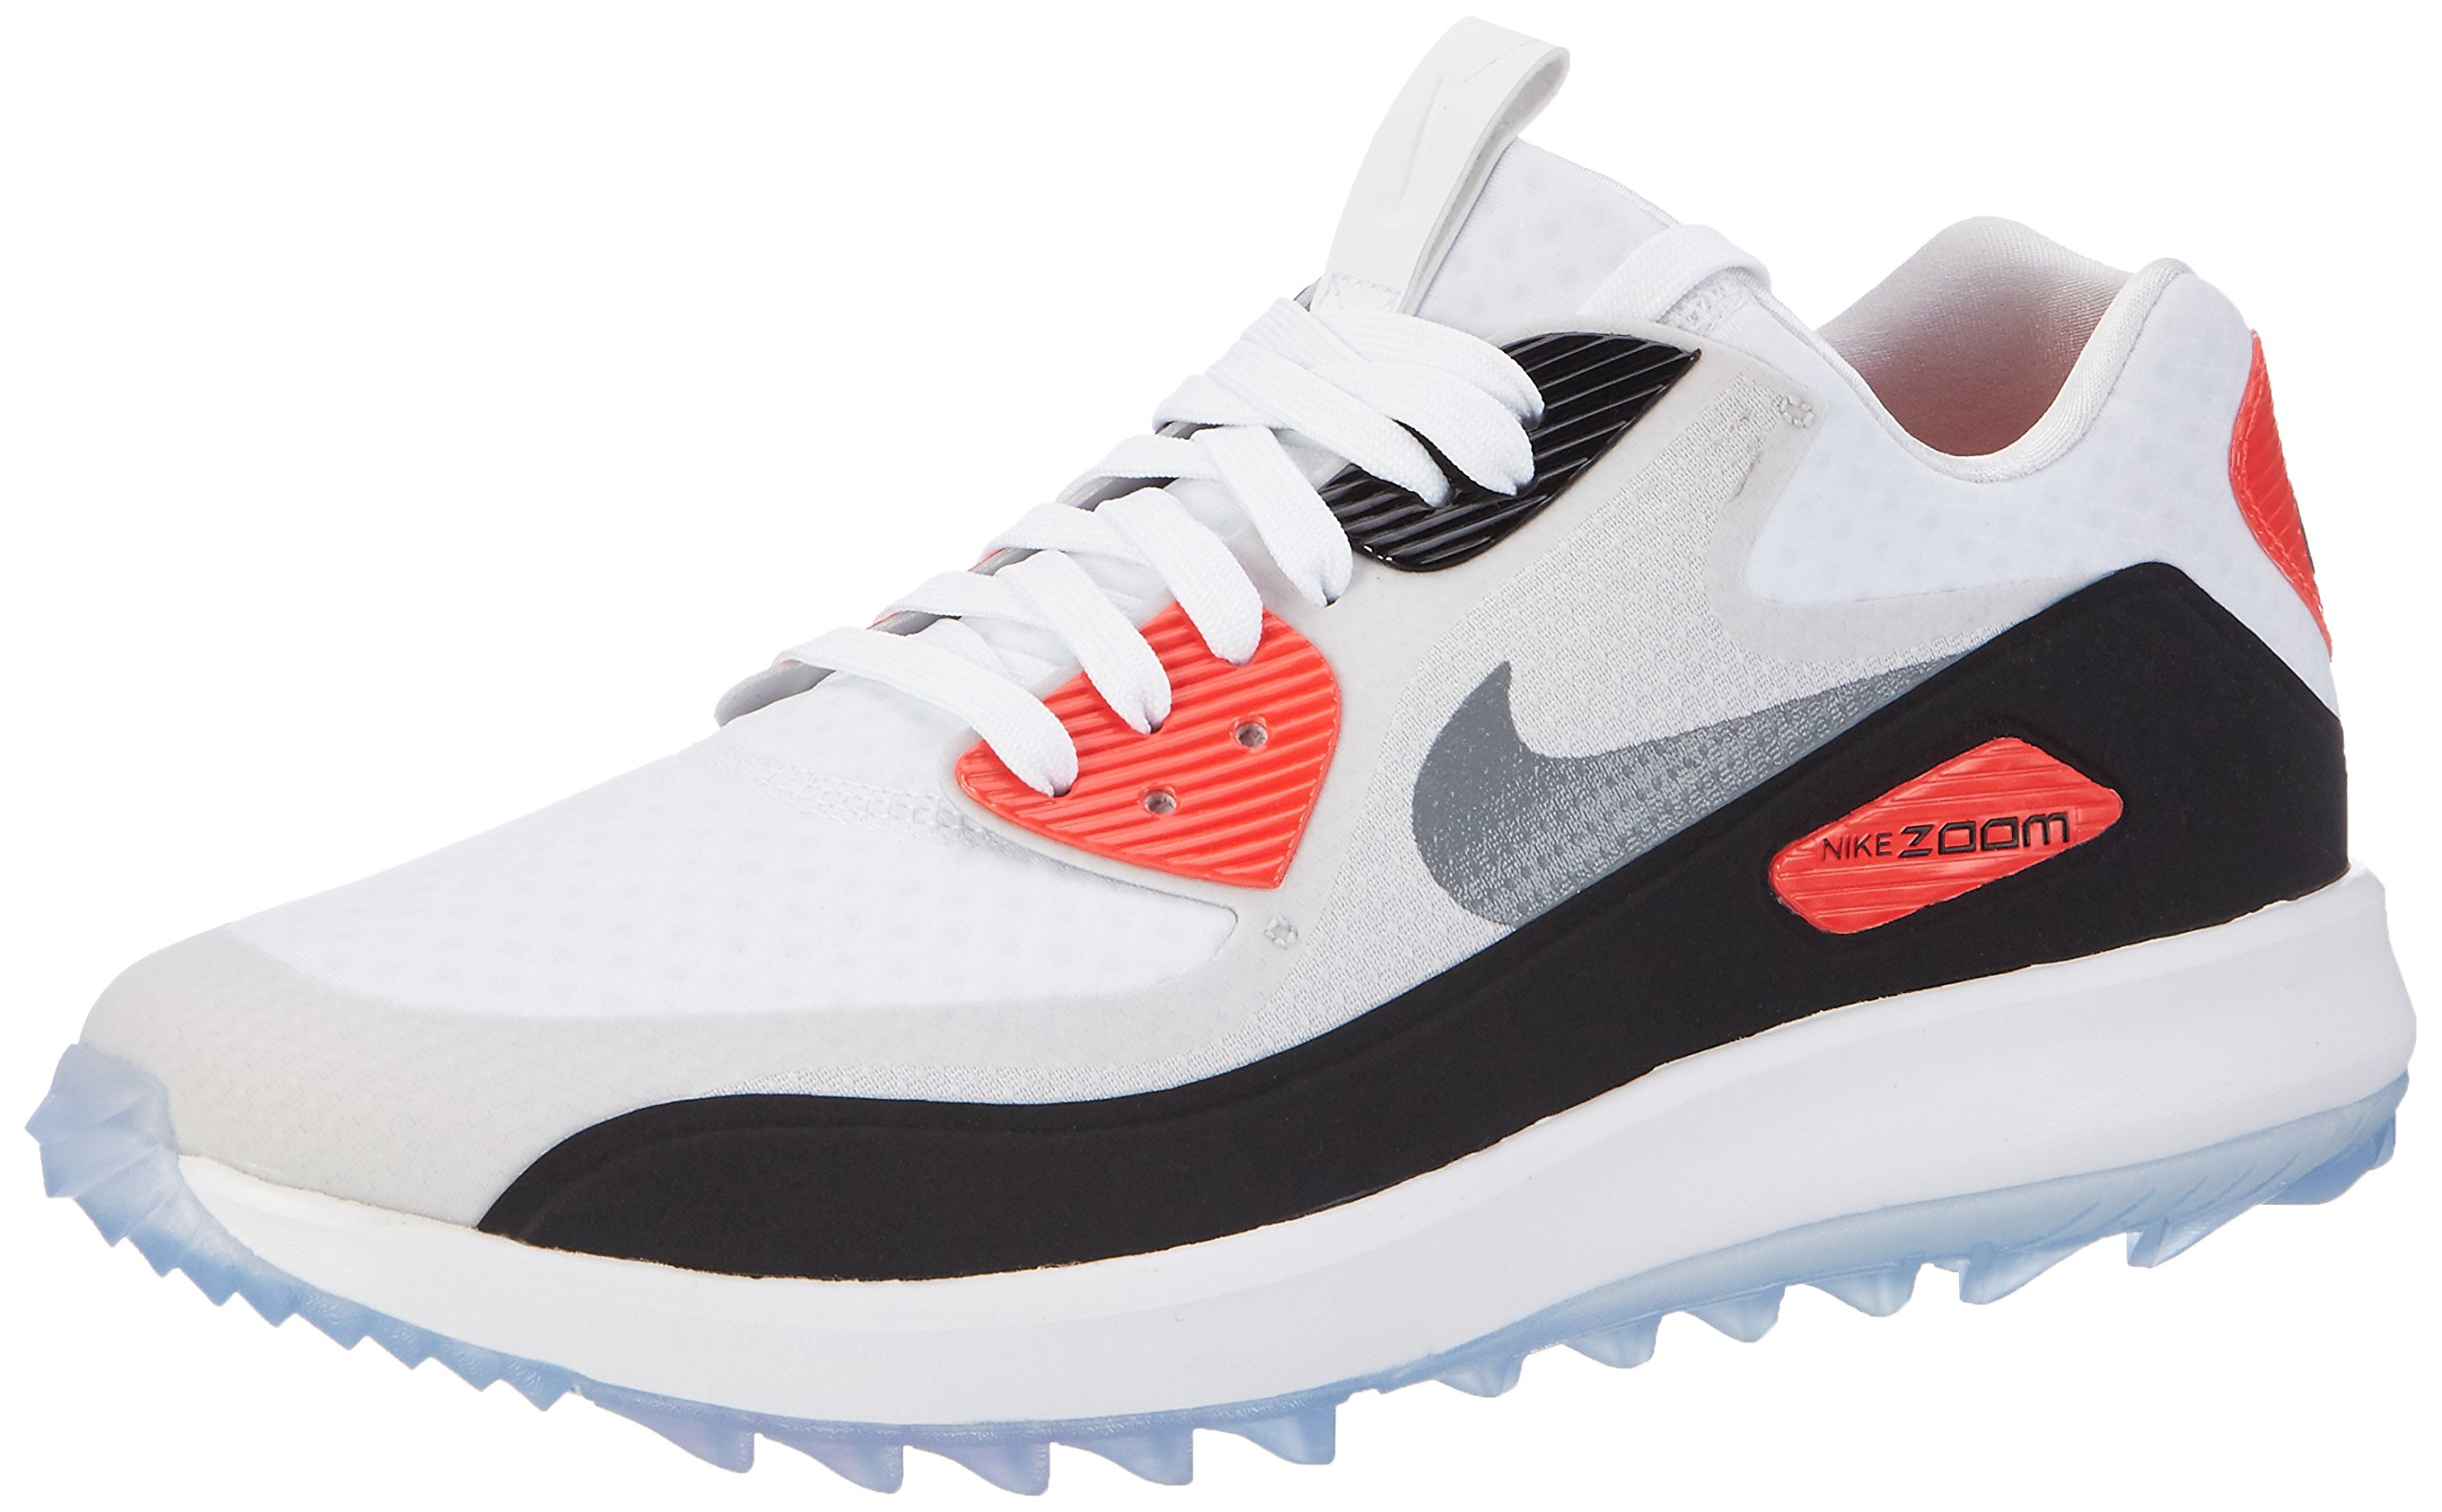 Nike Golf Air Zoom 90 IT Shoes